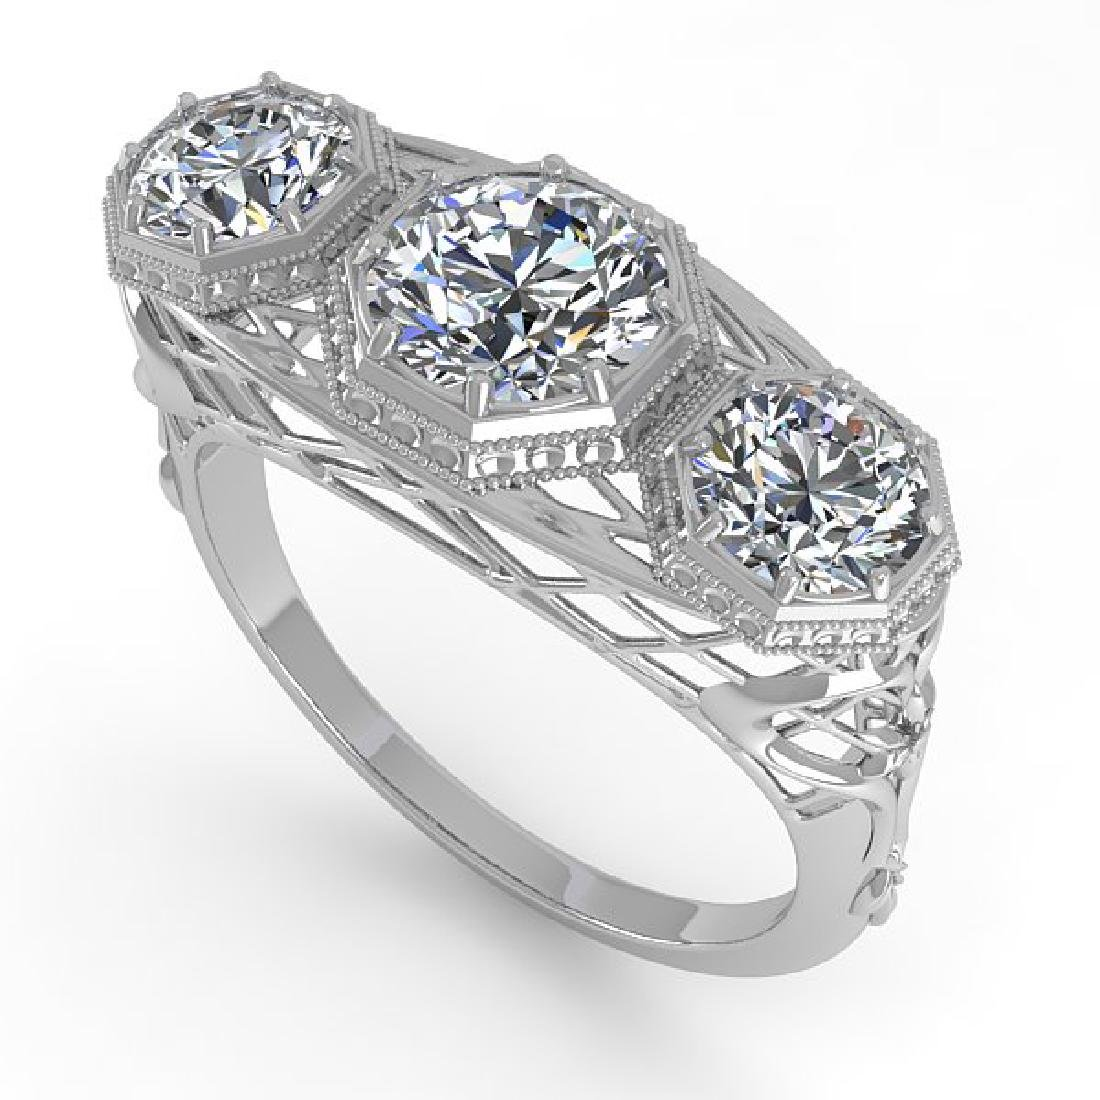 2 CTW VS/SI Diamond Ring 14K White Gold - 2